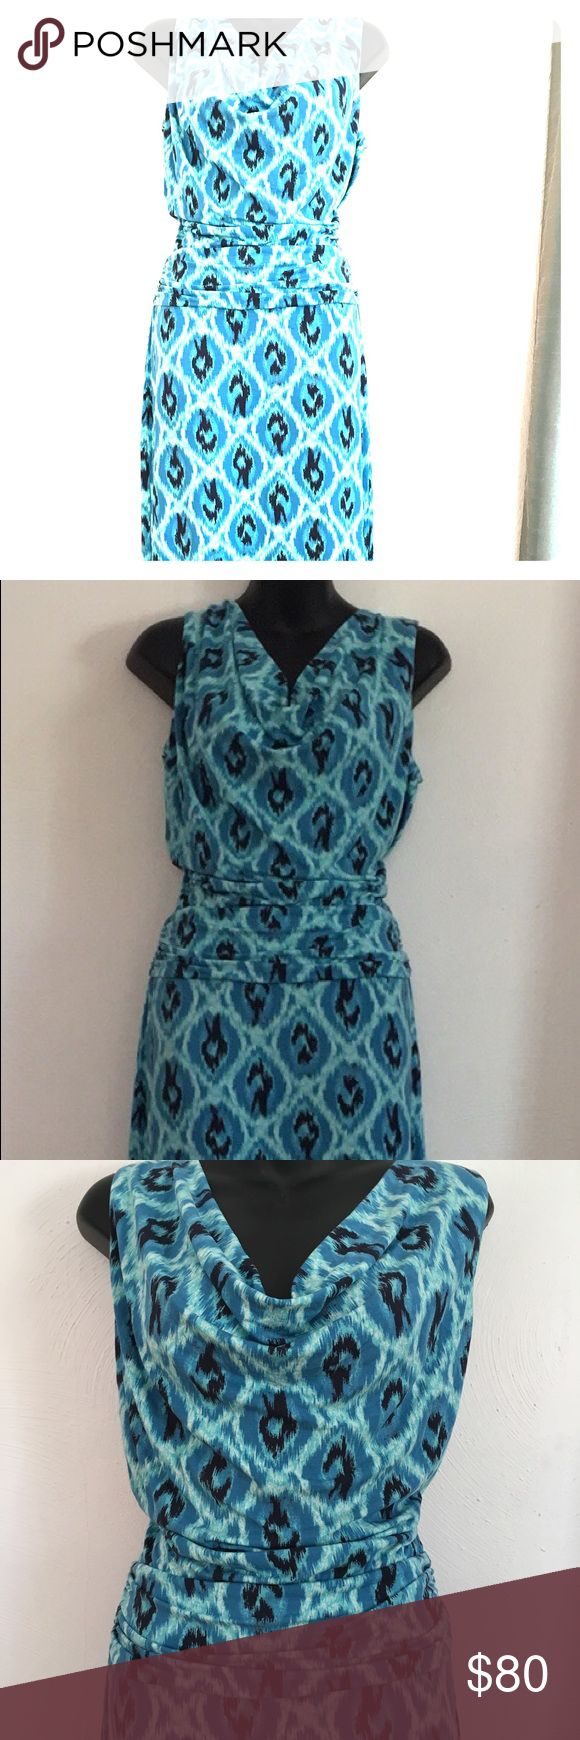 Tart Collection Maxi Dress NWT open back NWT Tart Collection maxi dress. Beautiful pattern, crossed open back. Soft, stretchy material. Tart Collection Dresses Maxi